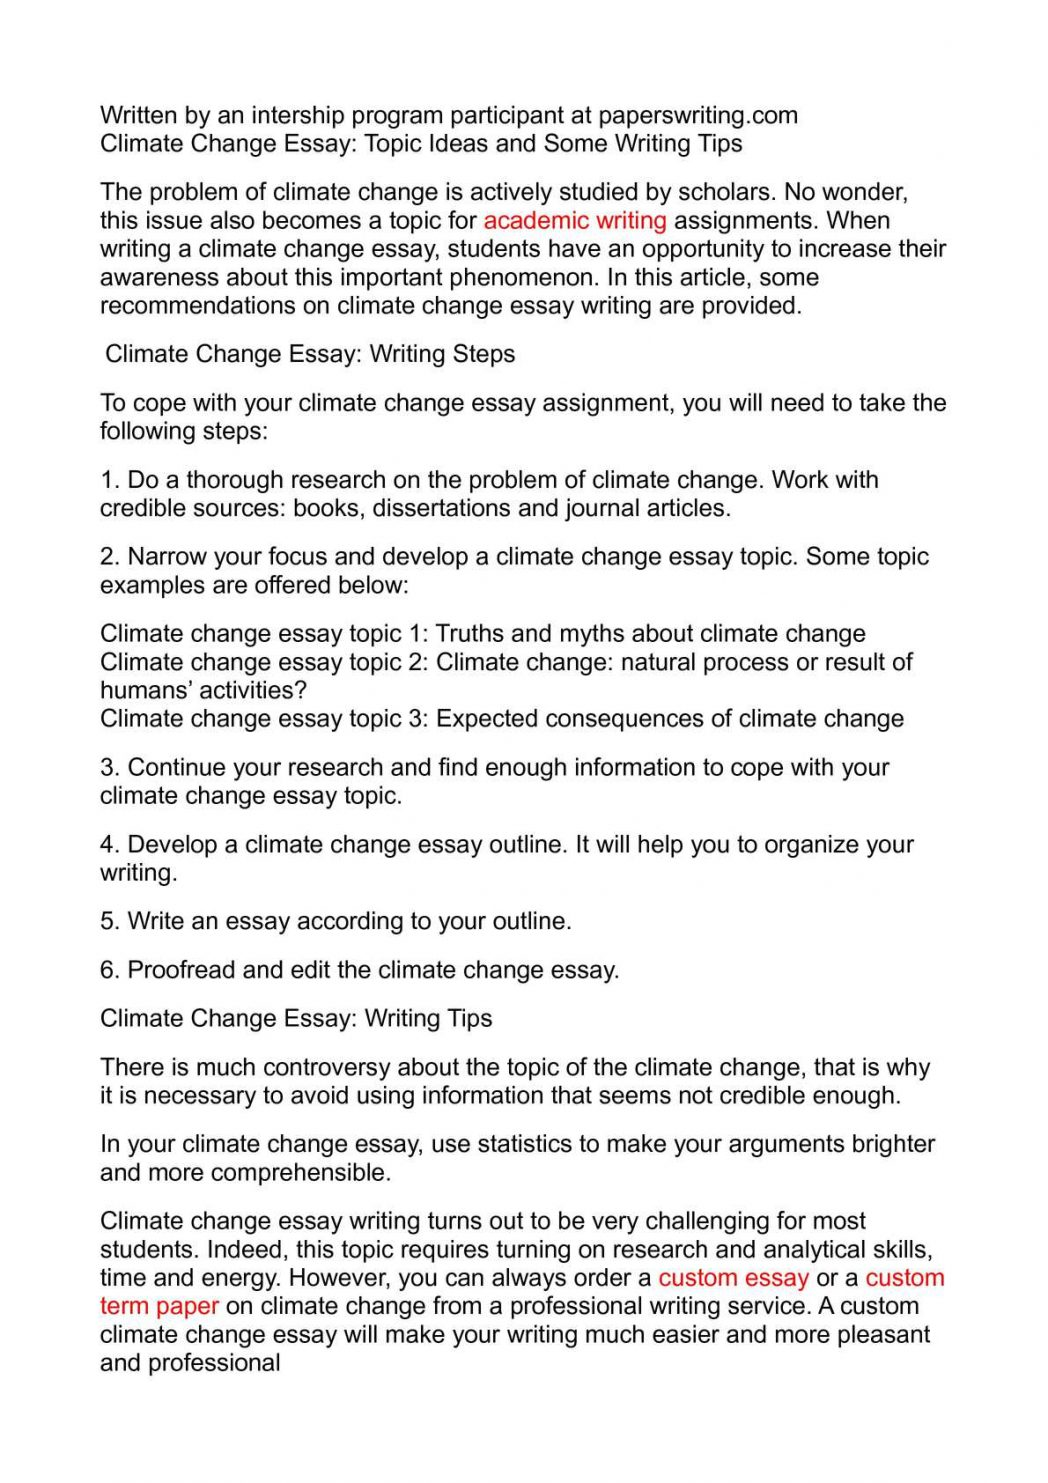 004 Global Climate Change Essay Warming And How To Write An Abo Argumentative On Persuasive Study Mode About Good Paper 1048x1483 Awesome In English 150 Words Thesis Statement Ideas Full